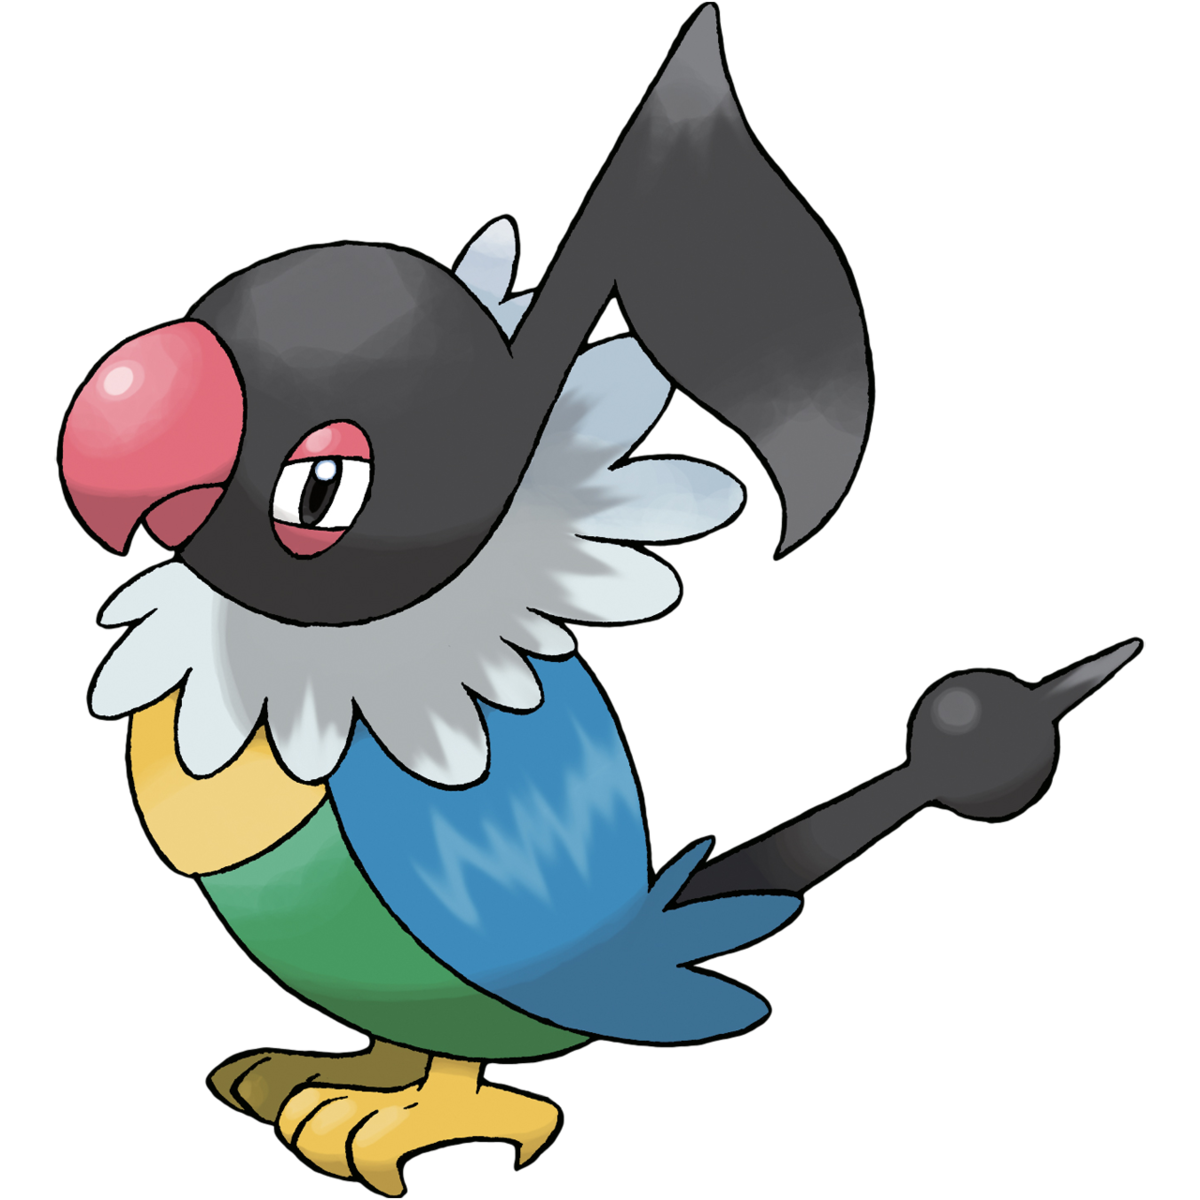 Chatot Sugimori Artwork